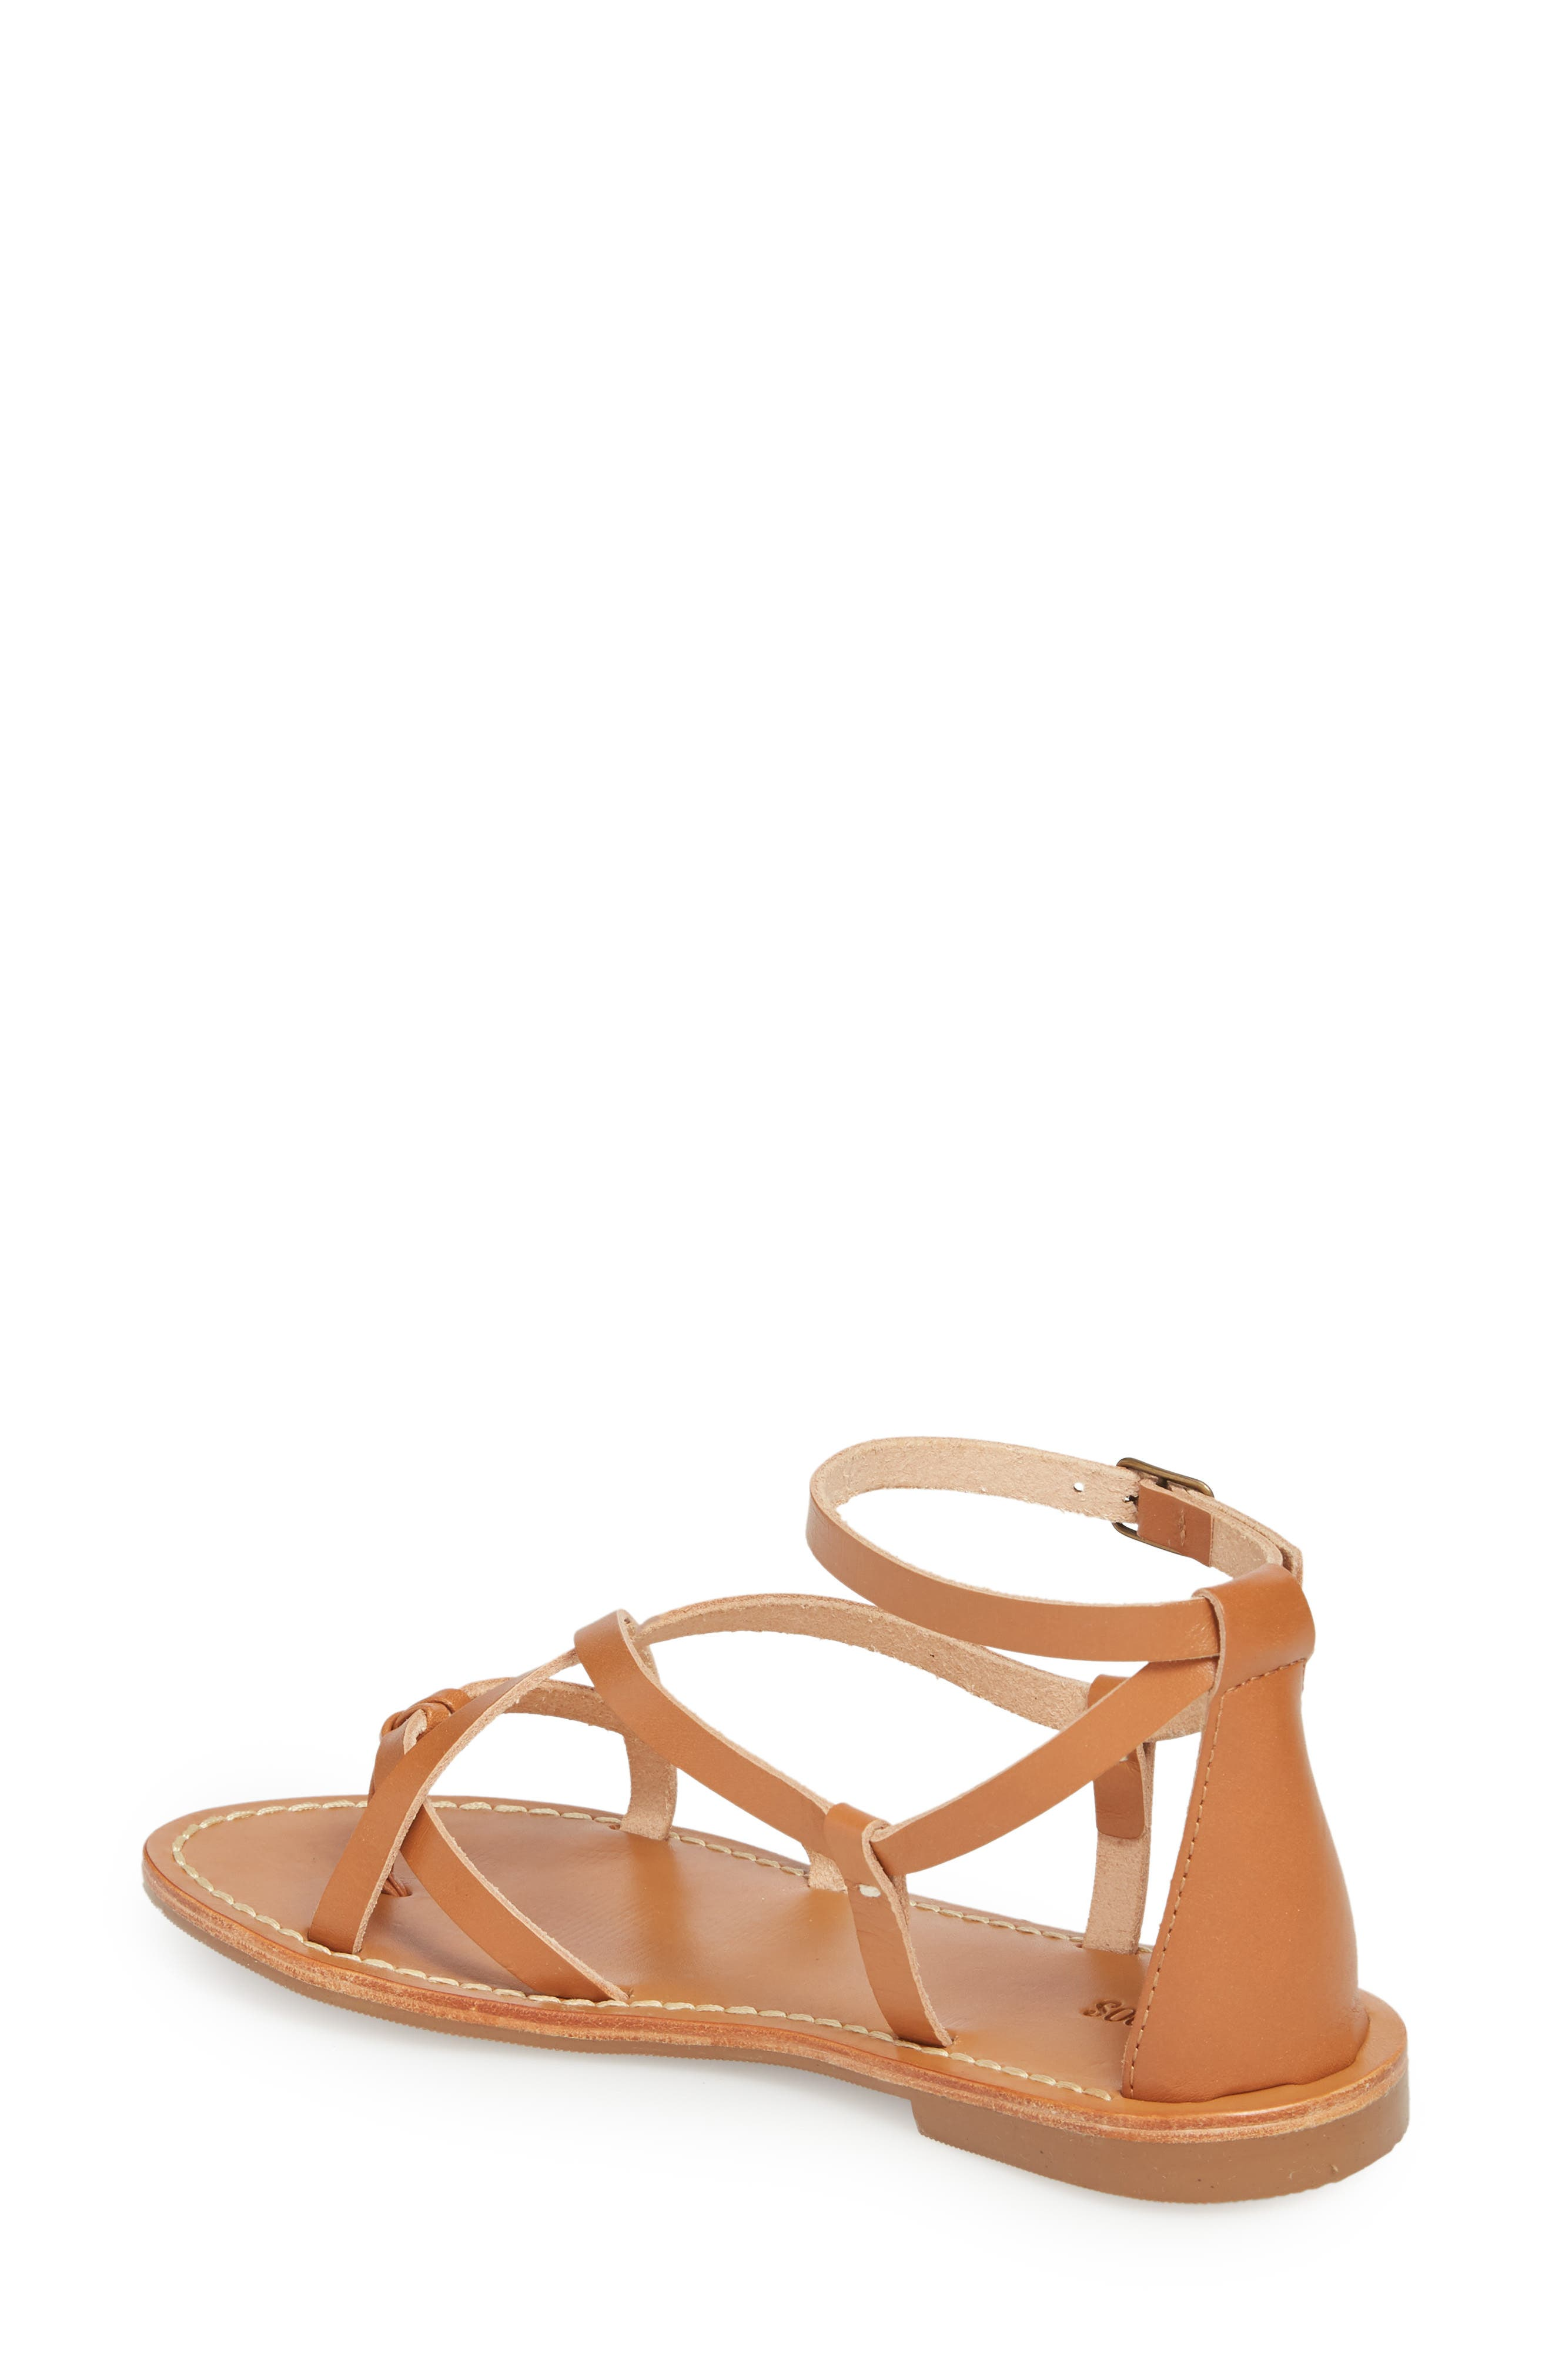 Strappy Sandal,                             Alternate thumbnail 2, color,                             Nude